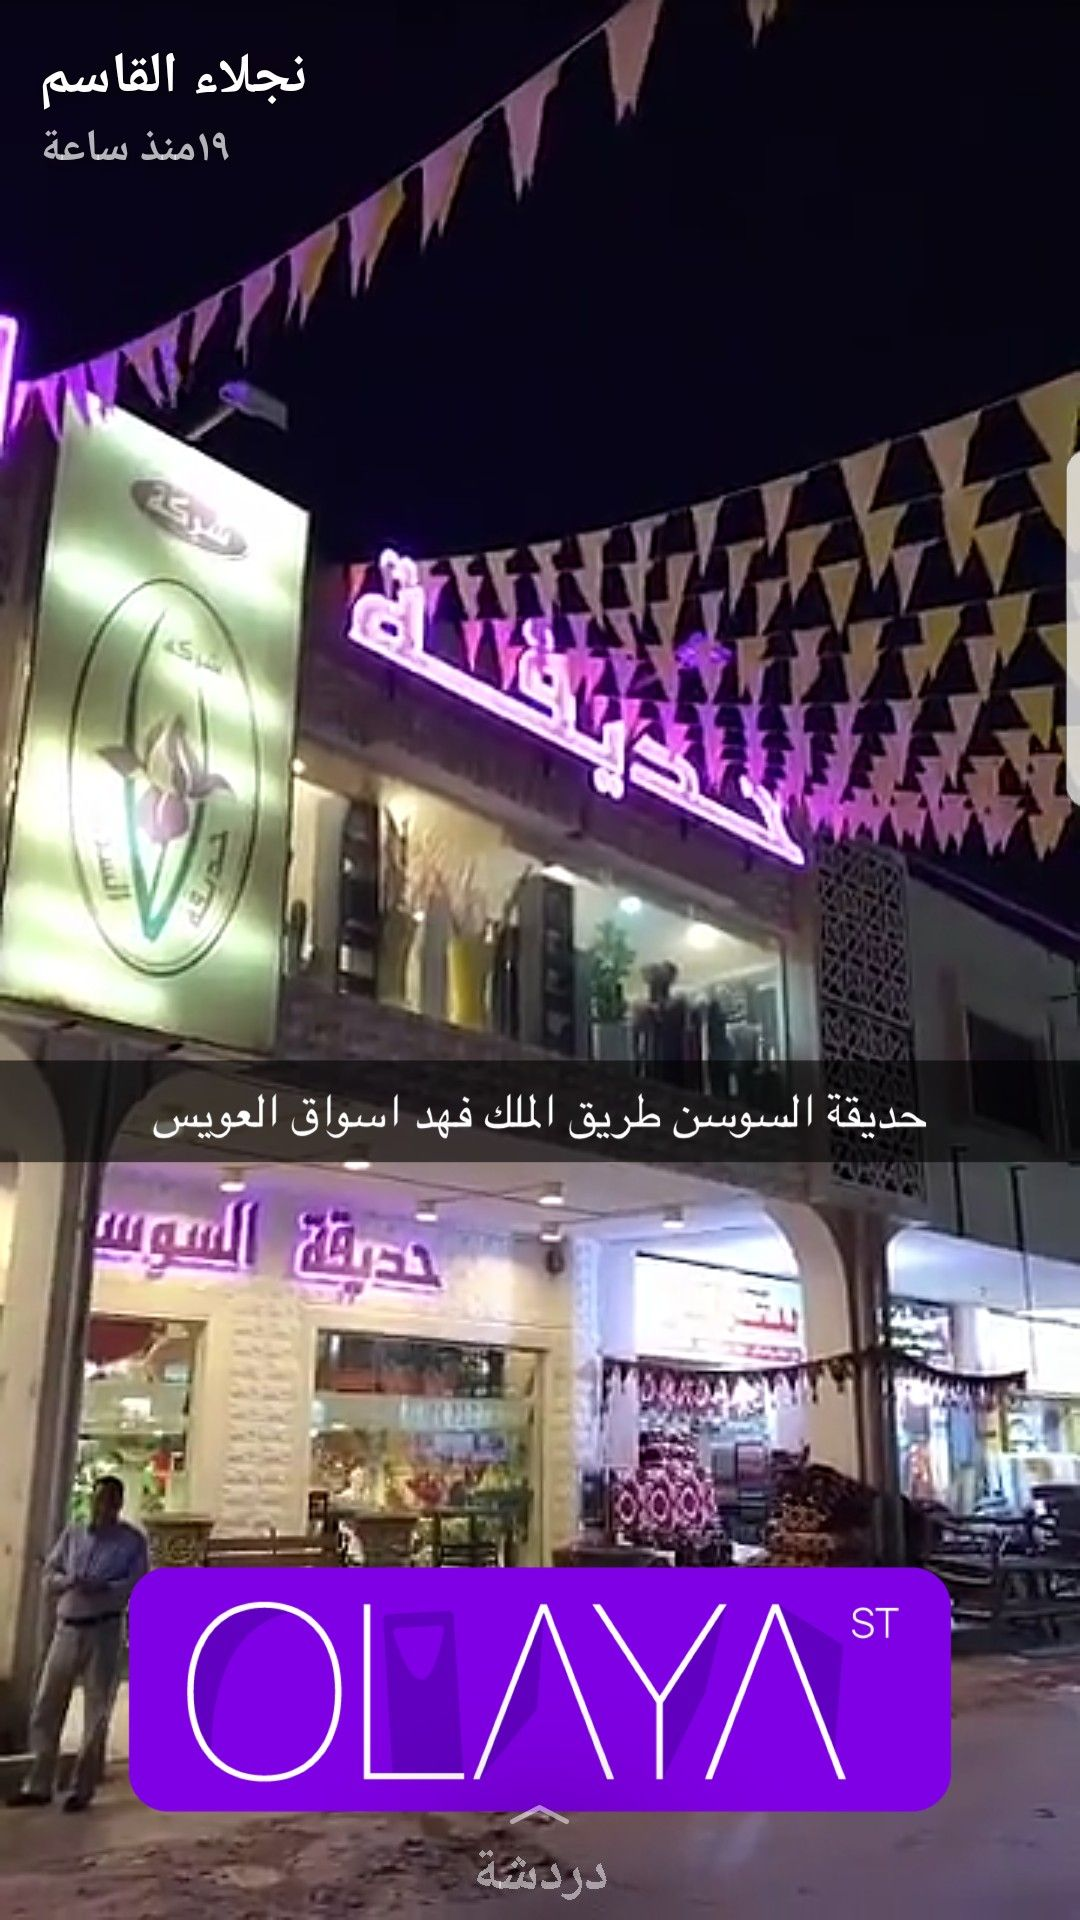 Pin By Mzoon27 On الرياض Broadway Shows Broadway Broadway Show Signs